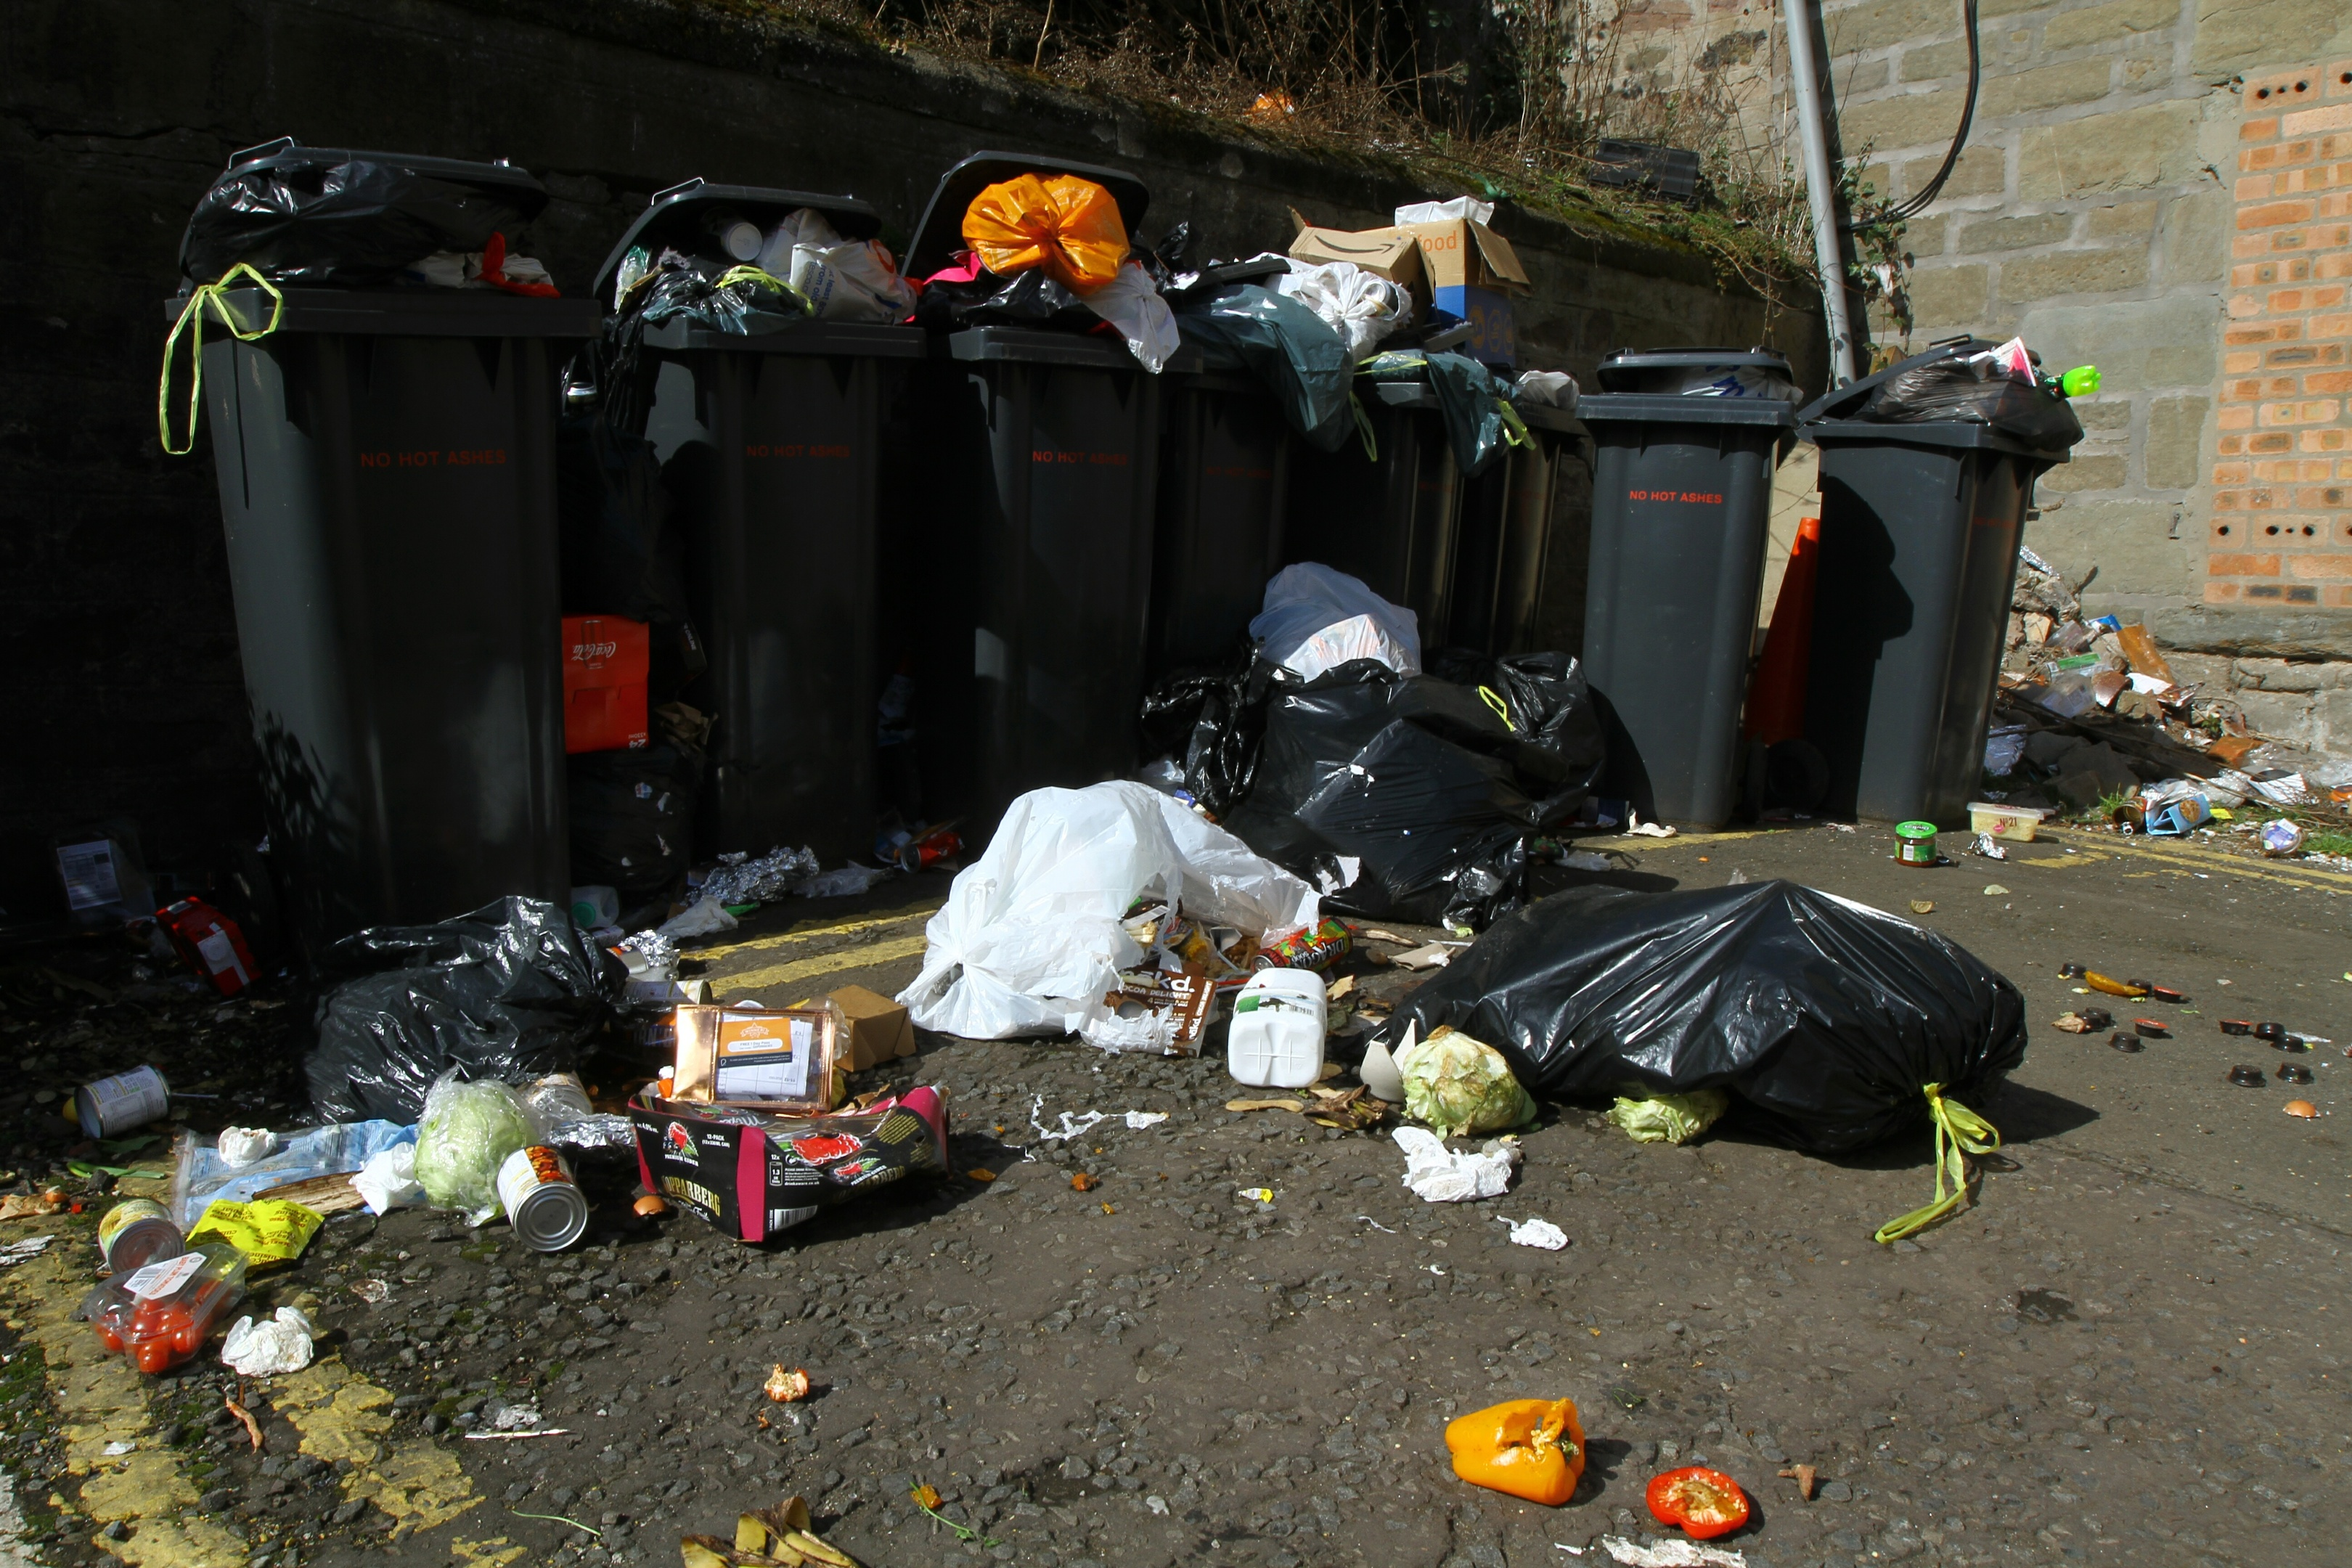 Overflowing rubbish at Seabraes Lane recently.